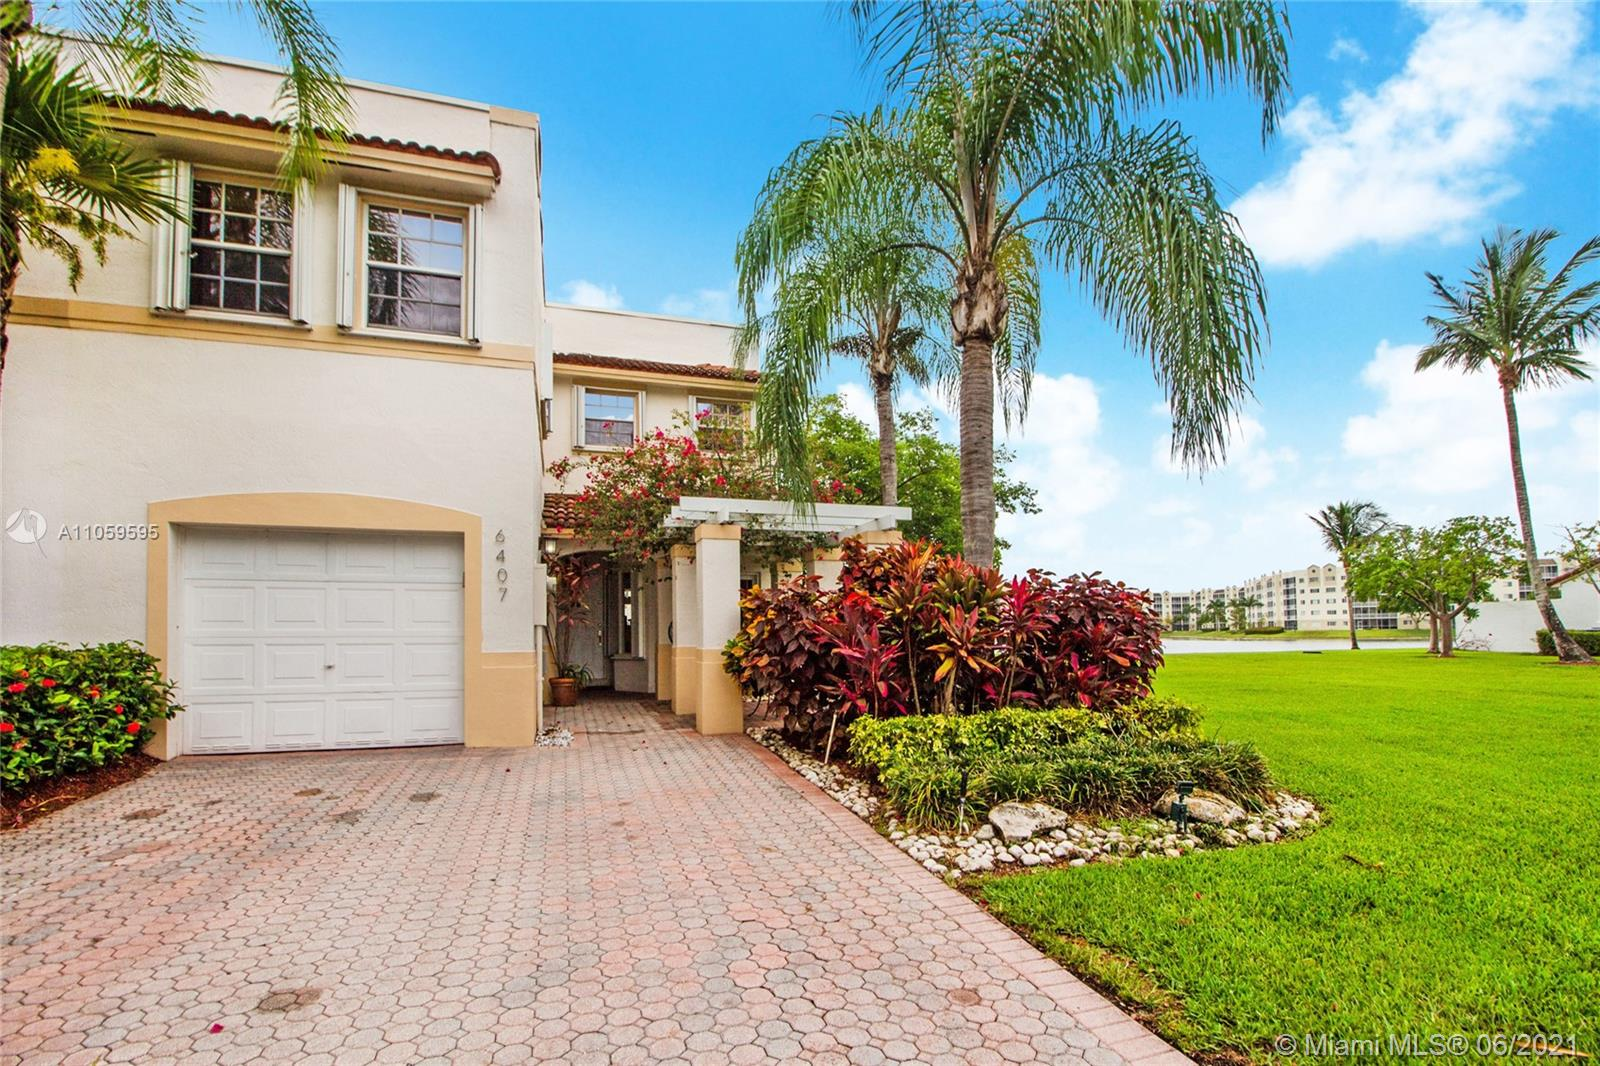 The most spectacular townhouse in Doral Isles. 3 bedrooms, 3 full bathrooms, one of them downstairs. Corner unit, beautiful lake view, marble floors, high-end appliances, covered patio, high-impact sliding glass doors to patio, garage converted into amazing home office, two parking spaces driveway. Short walking distance to Doral Isles' soccer and baseball fields, basketball and tennis courts, jogging trail, gorgeous Island Club with three pools, restaurant, fishing pier and gym.